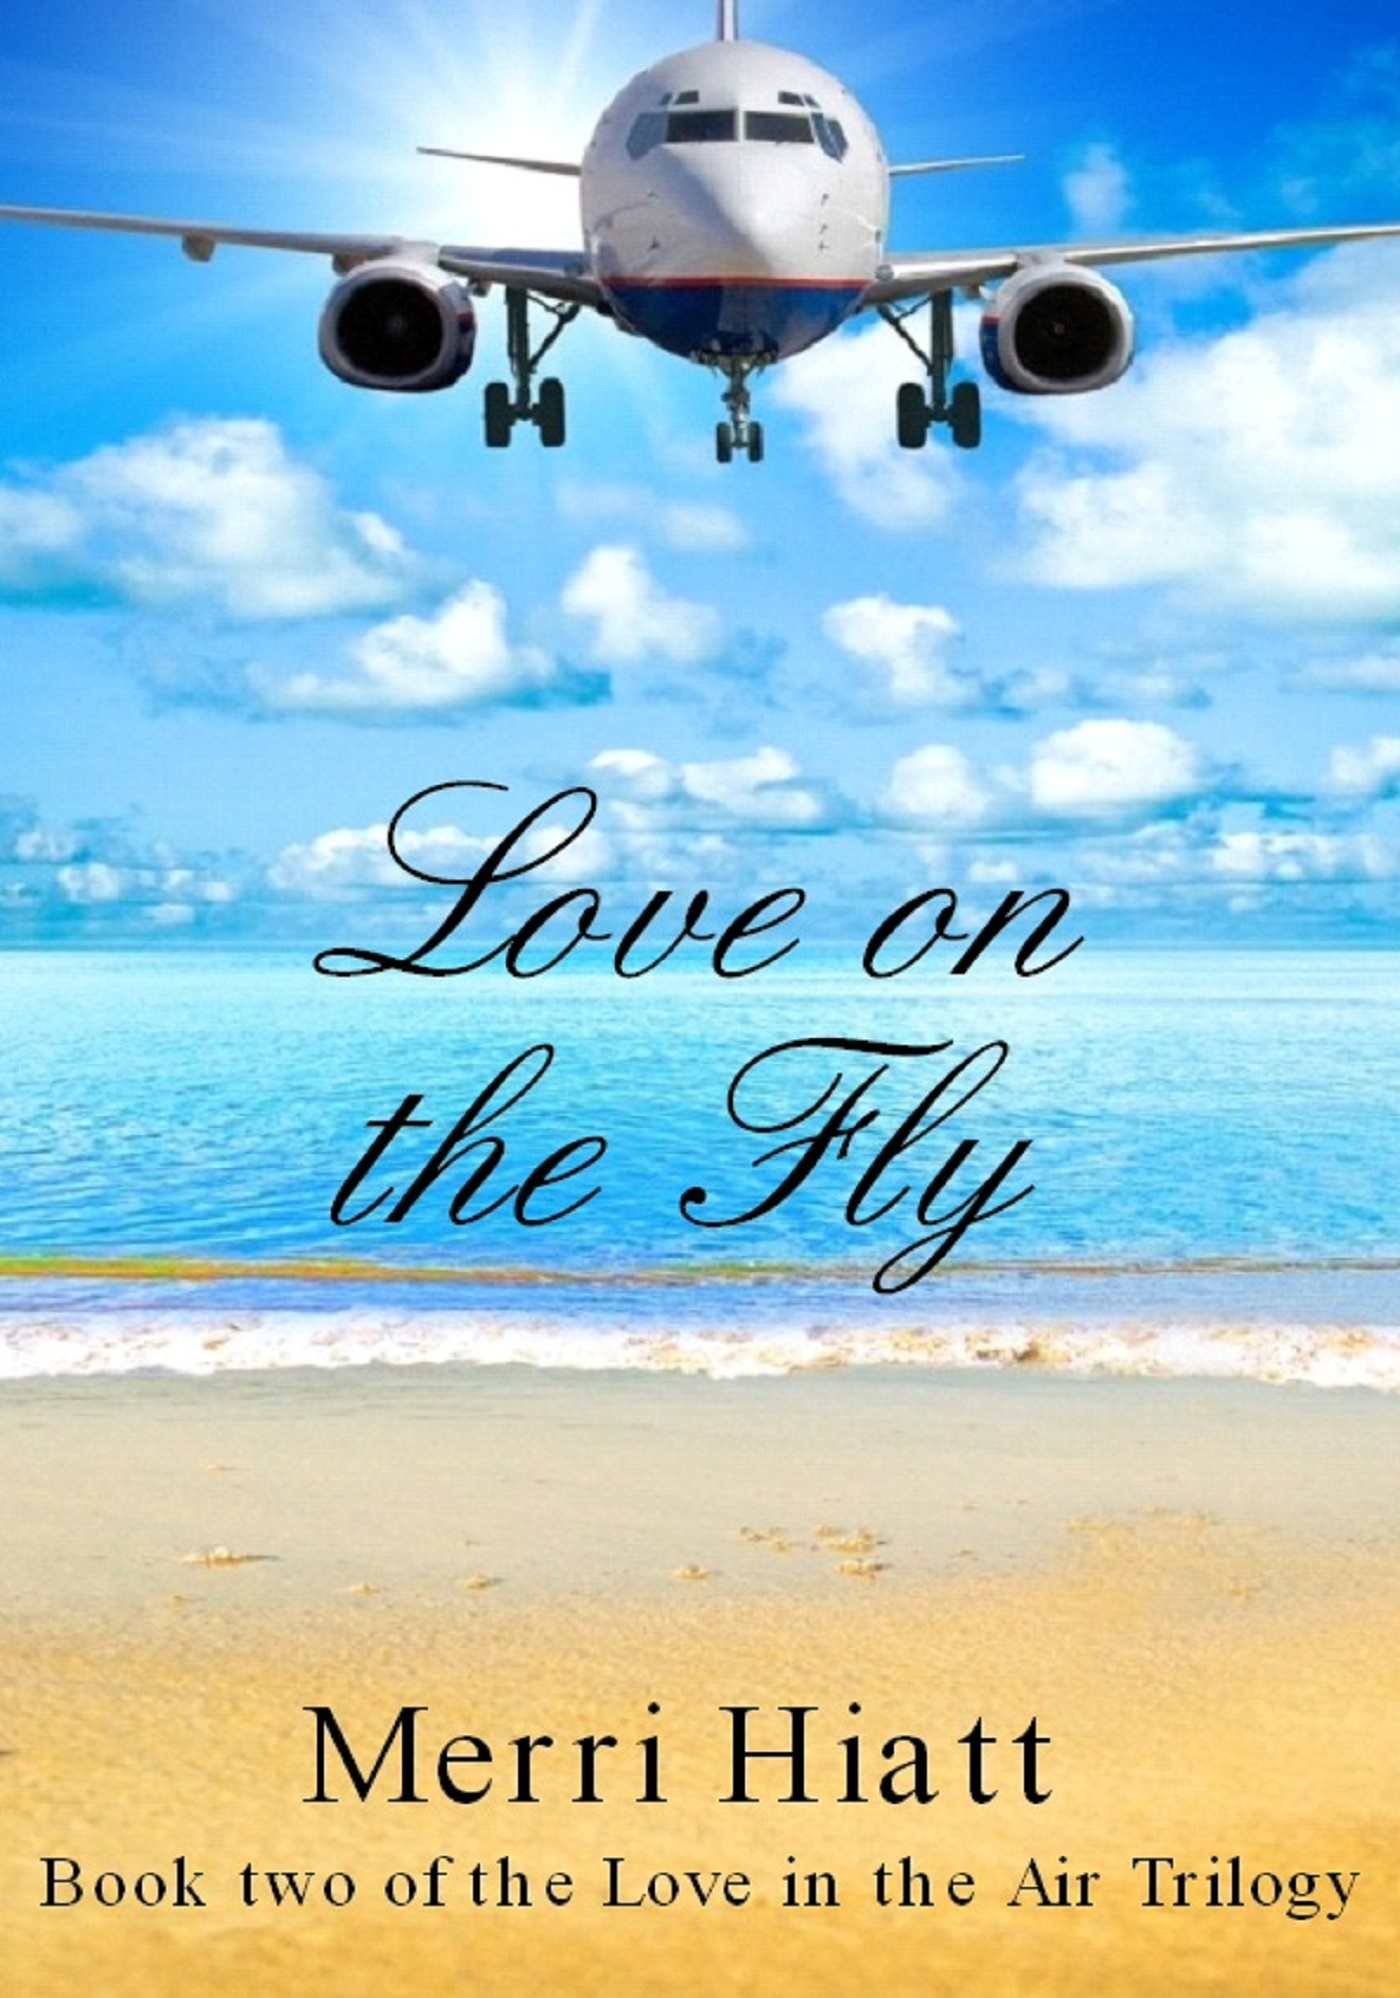 Love on the Fly (Book two of the Love in the Air Trilogy)